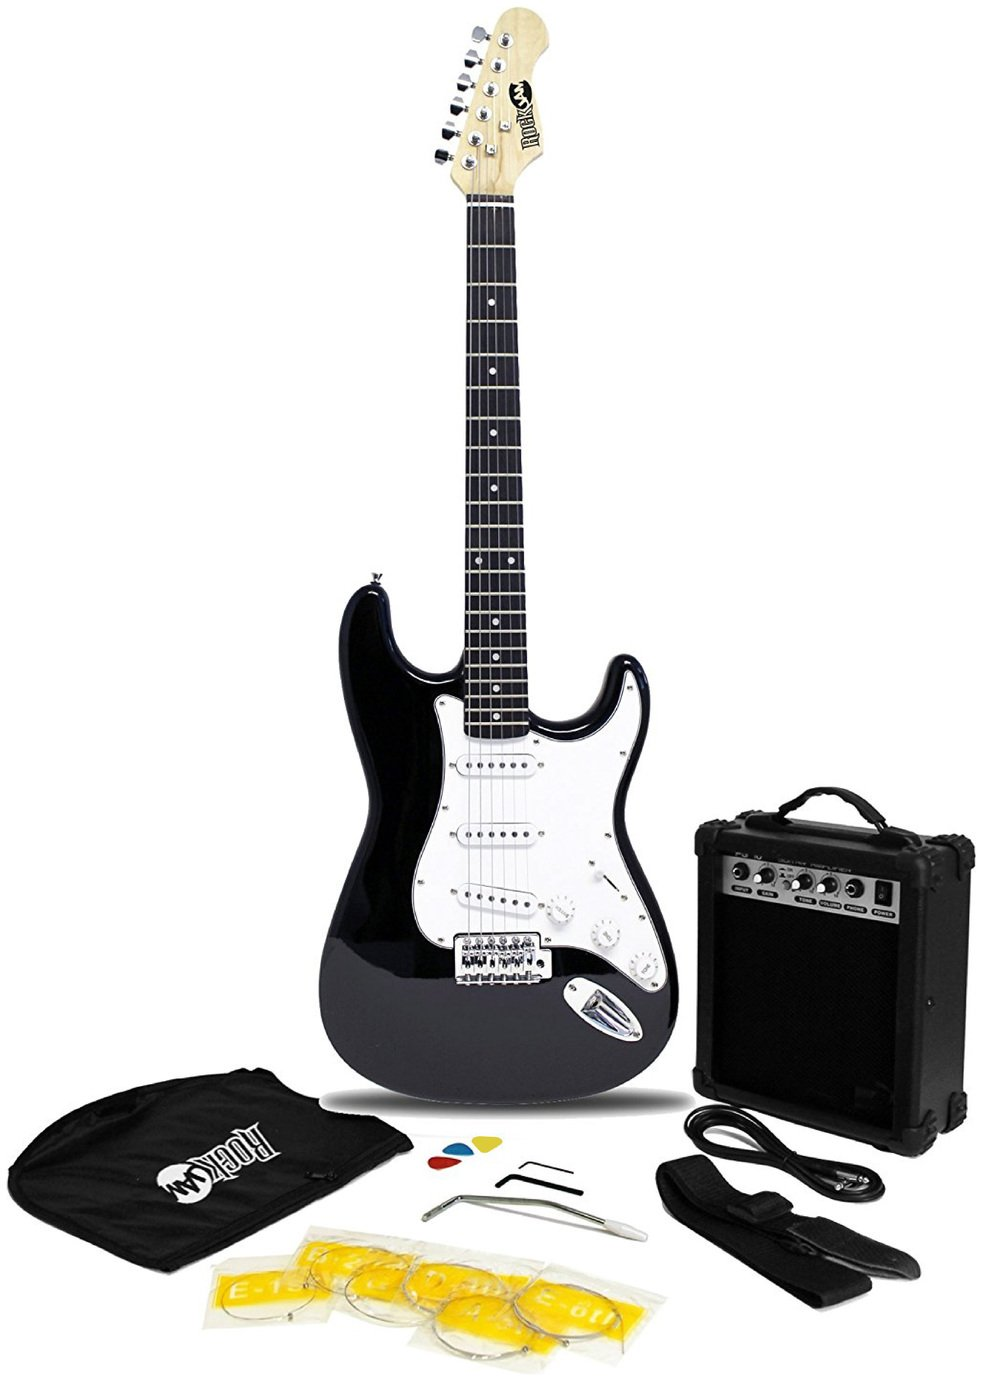 RockJam Electric Guitar Kit With Amp & Tuner - Black